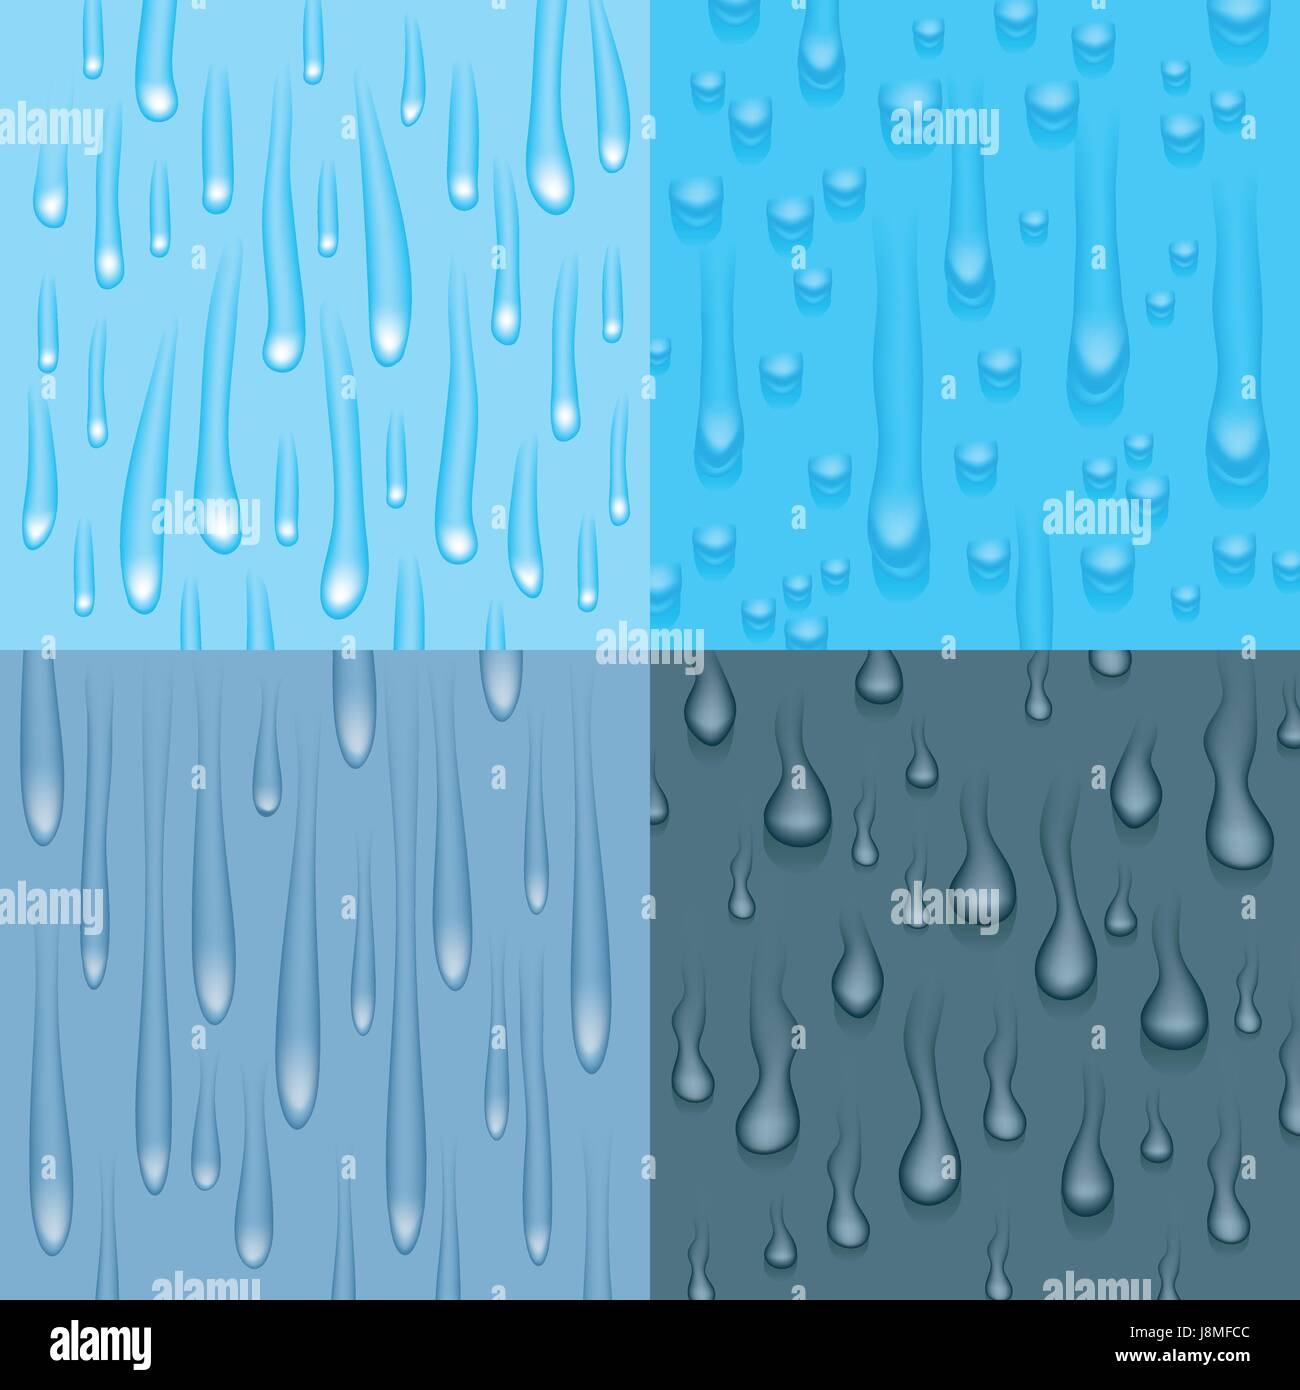 Set of four different drip and drop design elements. - Stock Vector